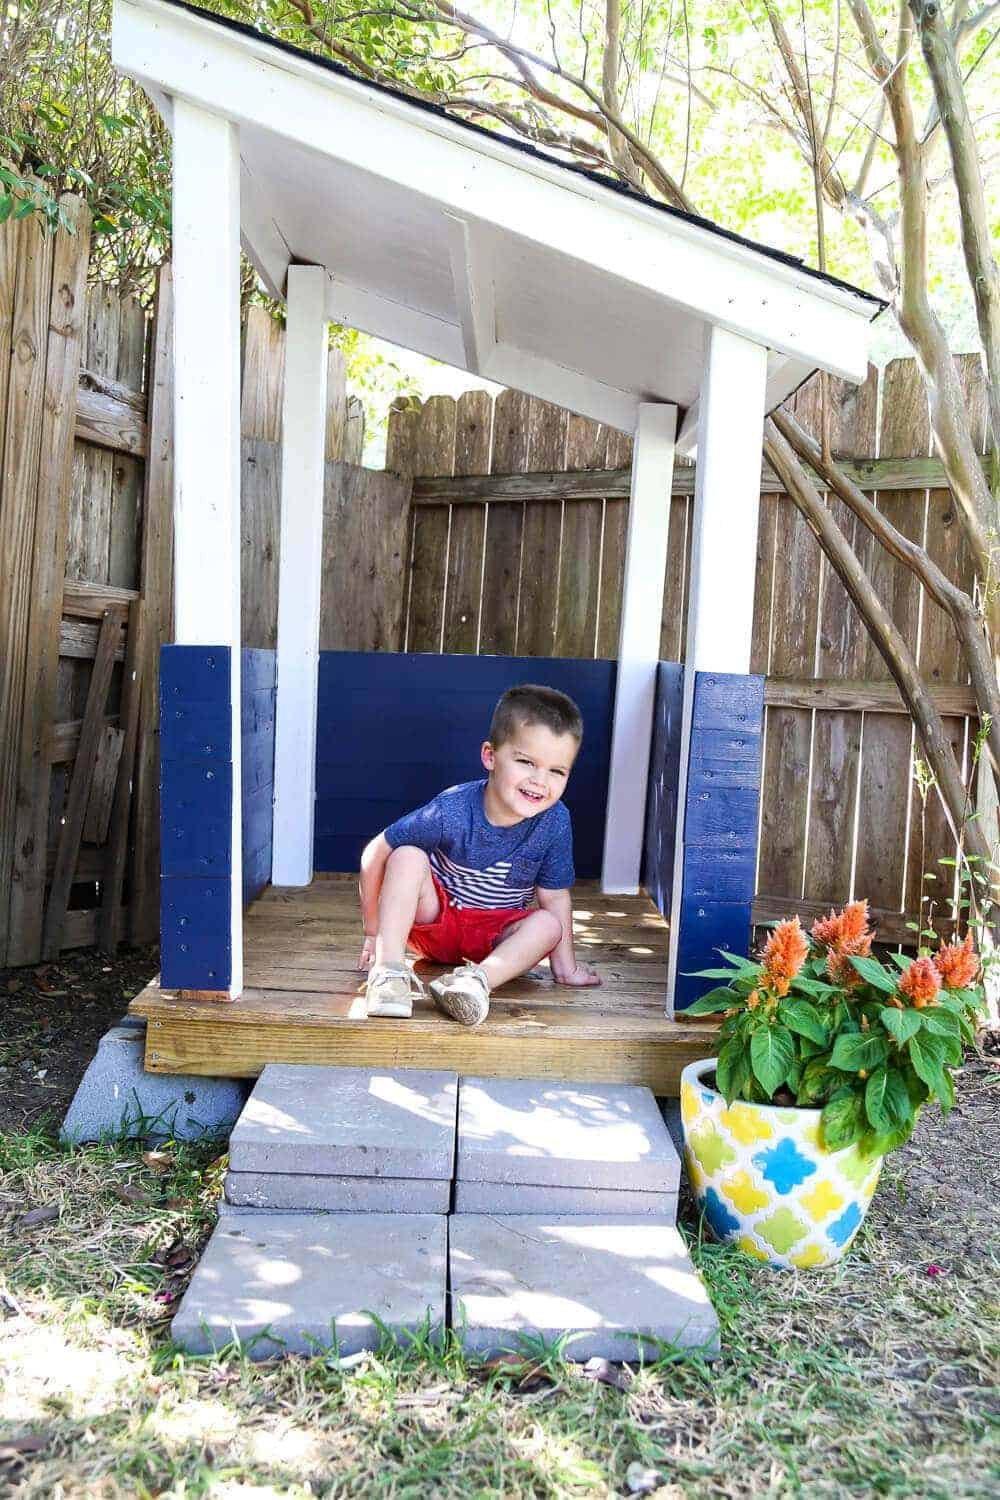 How To Build An Adorable Backyard Playhouse For Your Toddler Or Child. Itu0027s  Affordable,